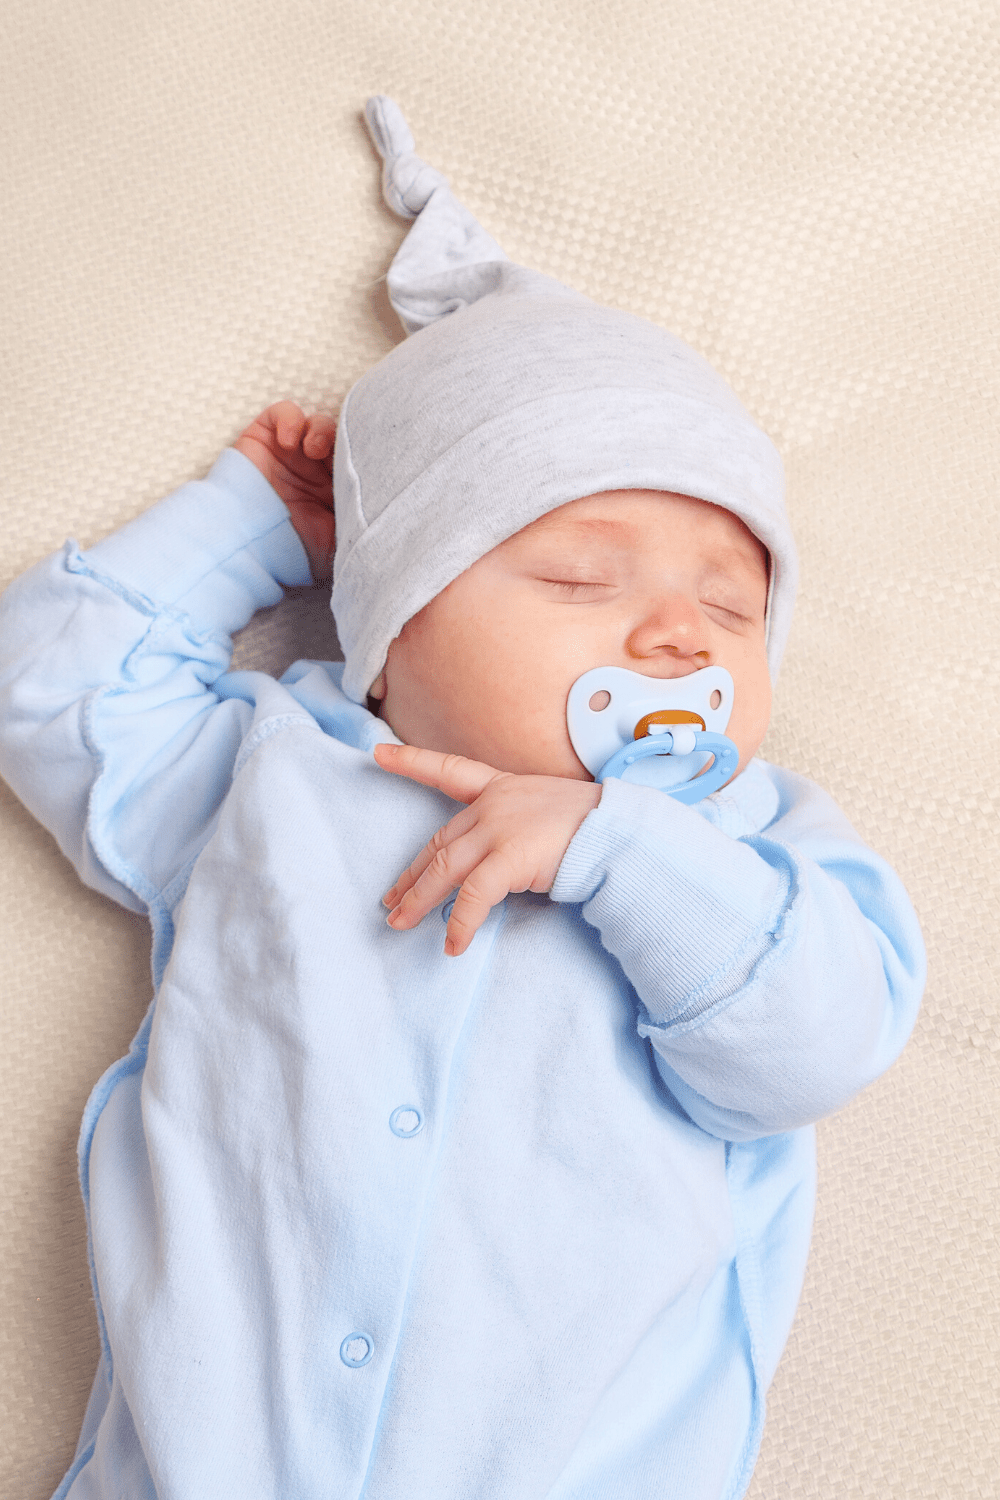 How I Successfully Sleep Trained My 5 Month Old Baby in 2 Days